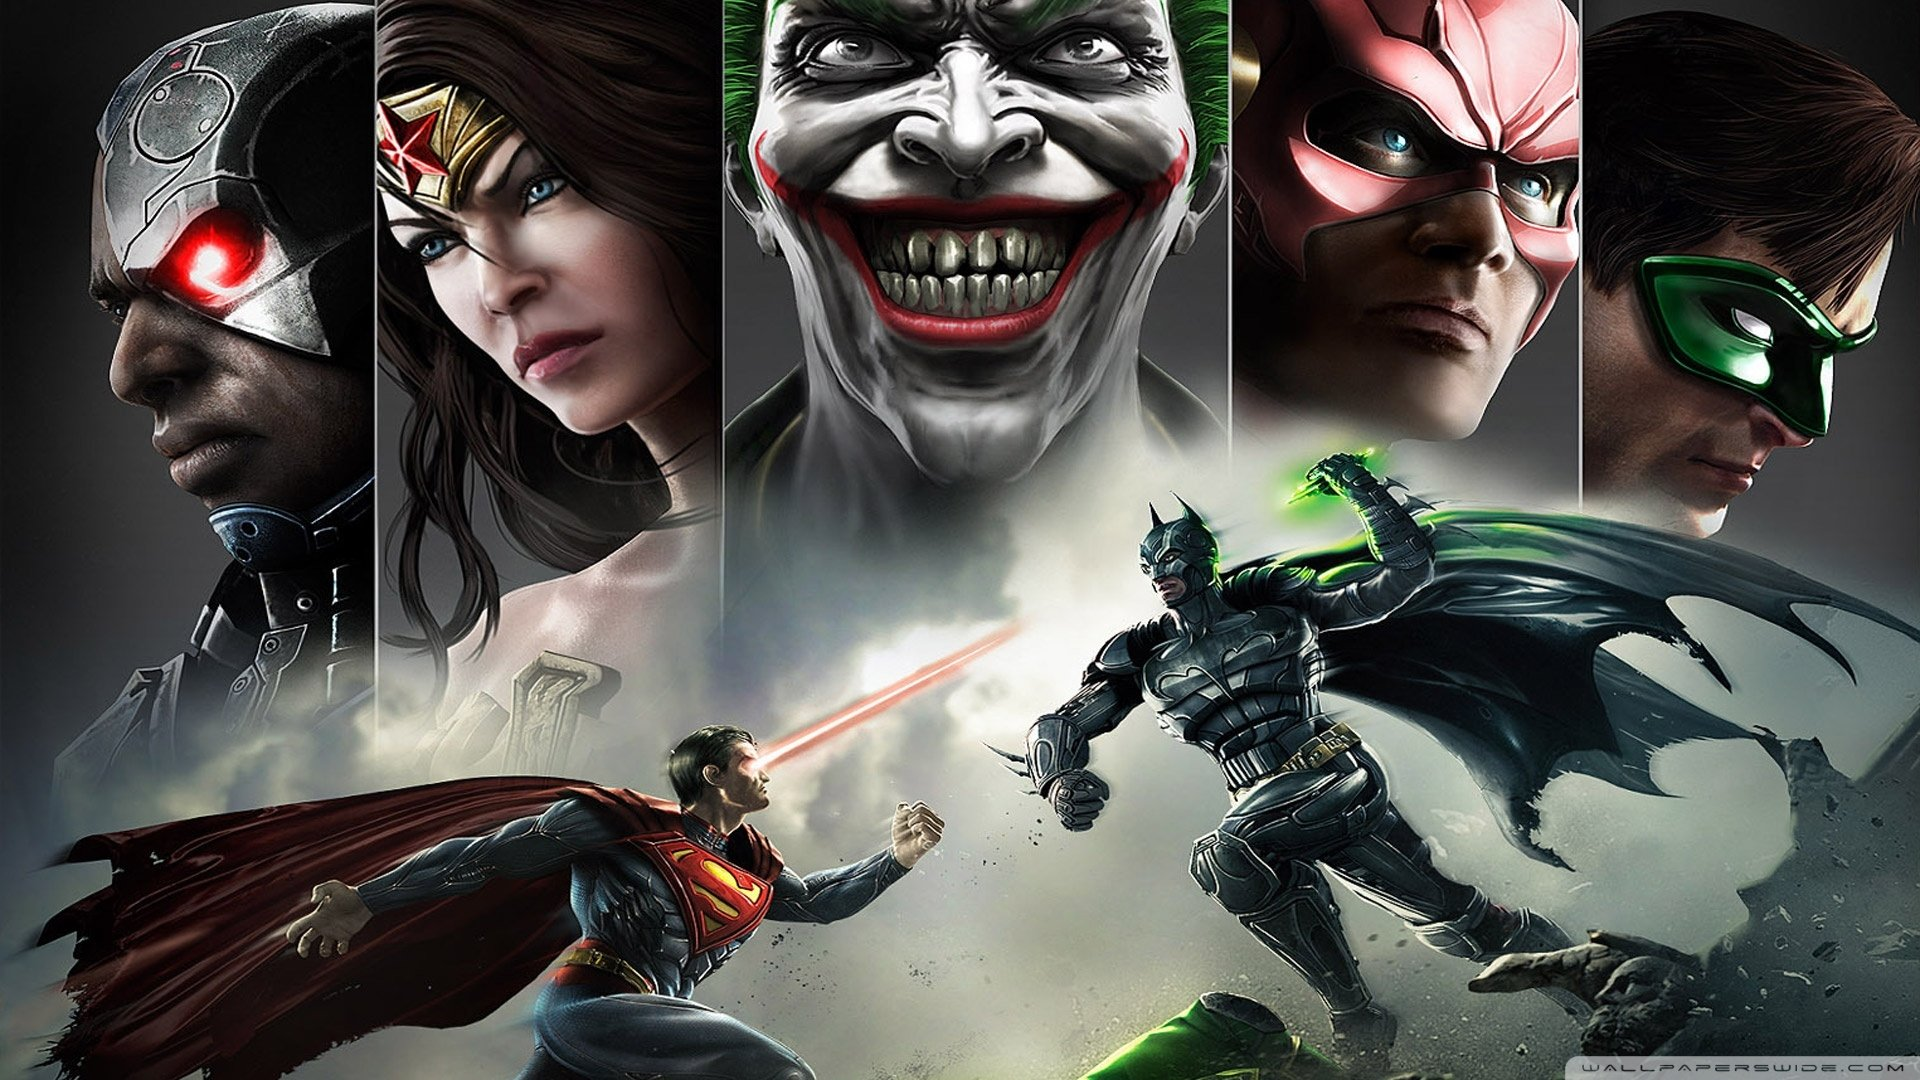 107 injustice gods among us hd wallpapers background images hd wallpaper background image id403308 1920x1080 video game injustice gods among us voltagebd Image collections